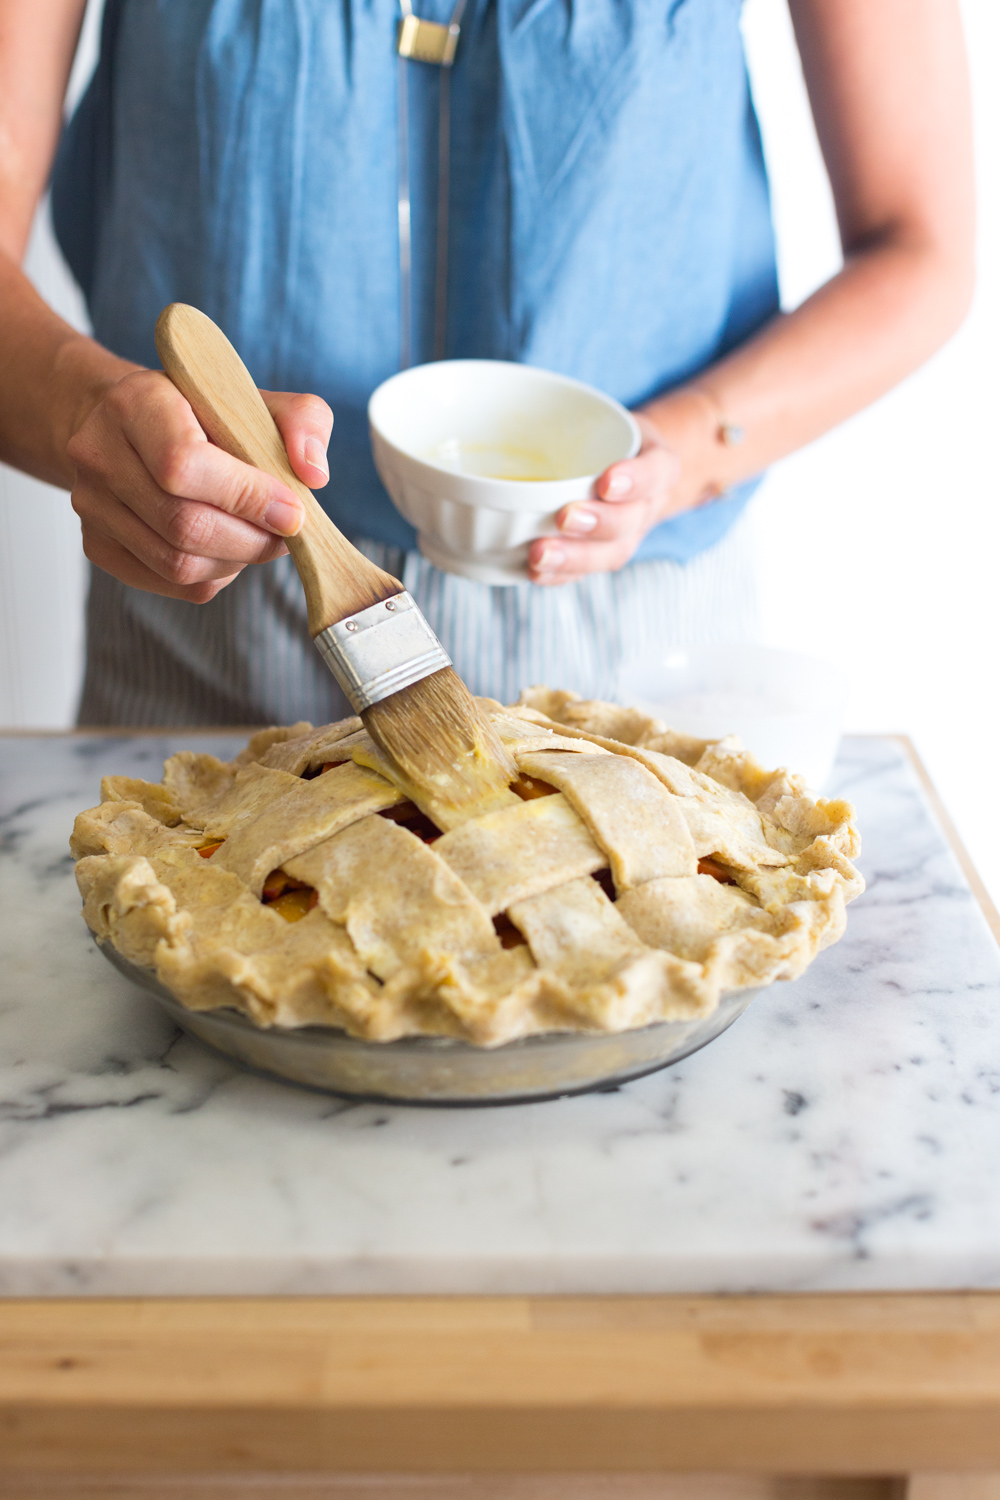 A baker brushing a peach pie with an egg wash.